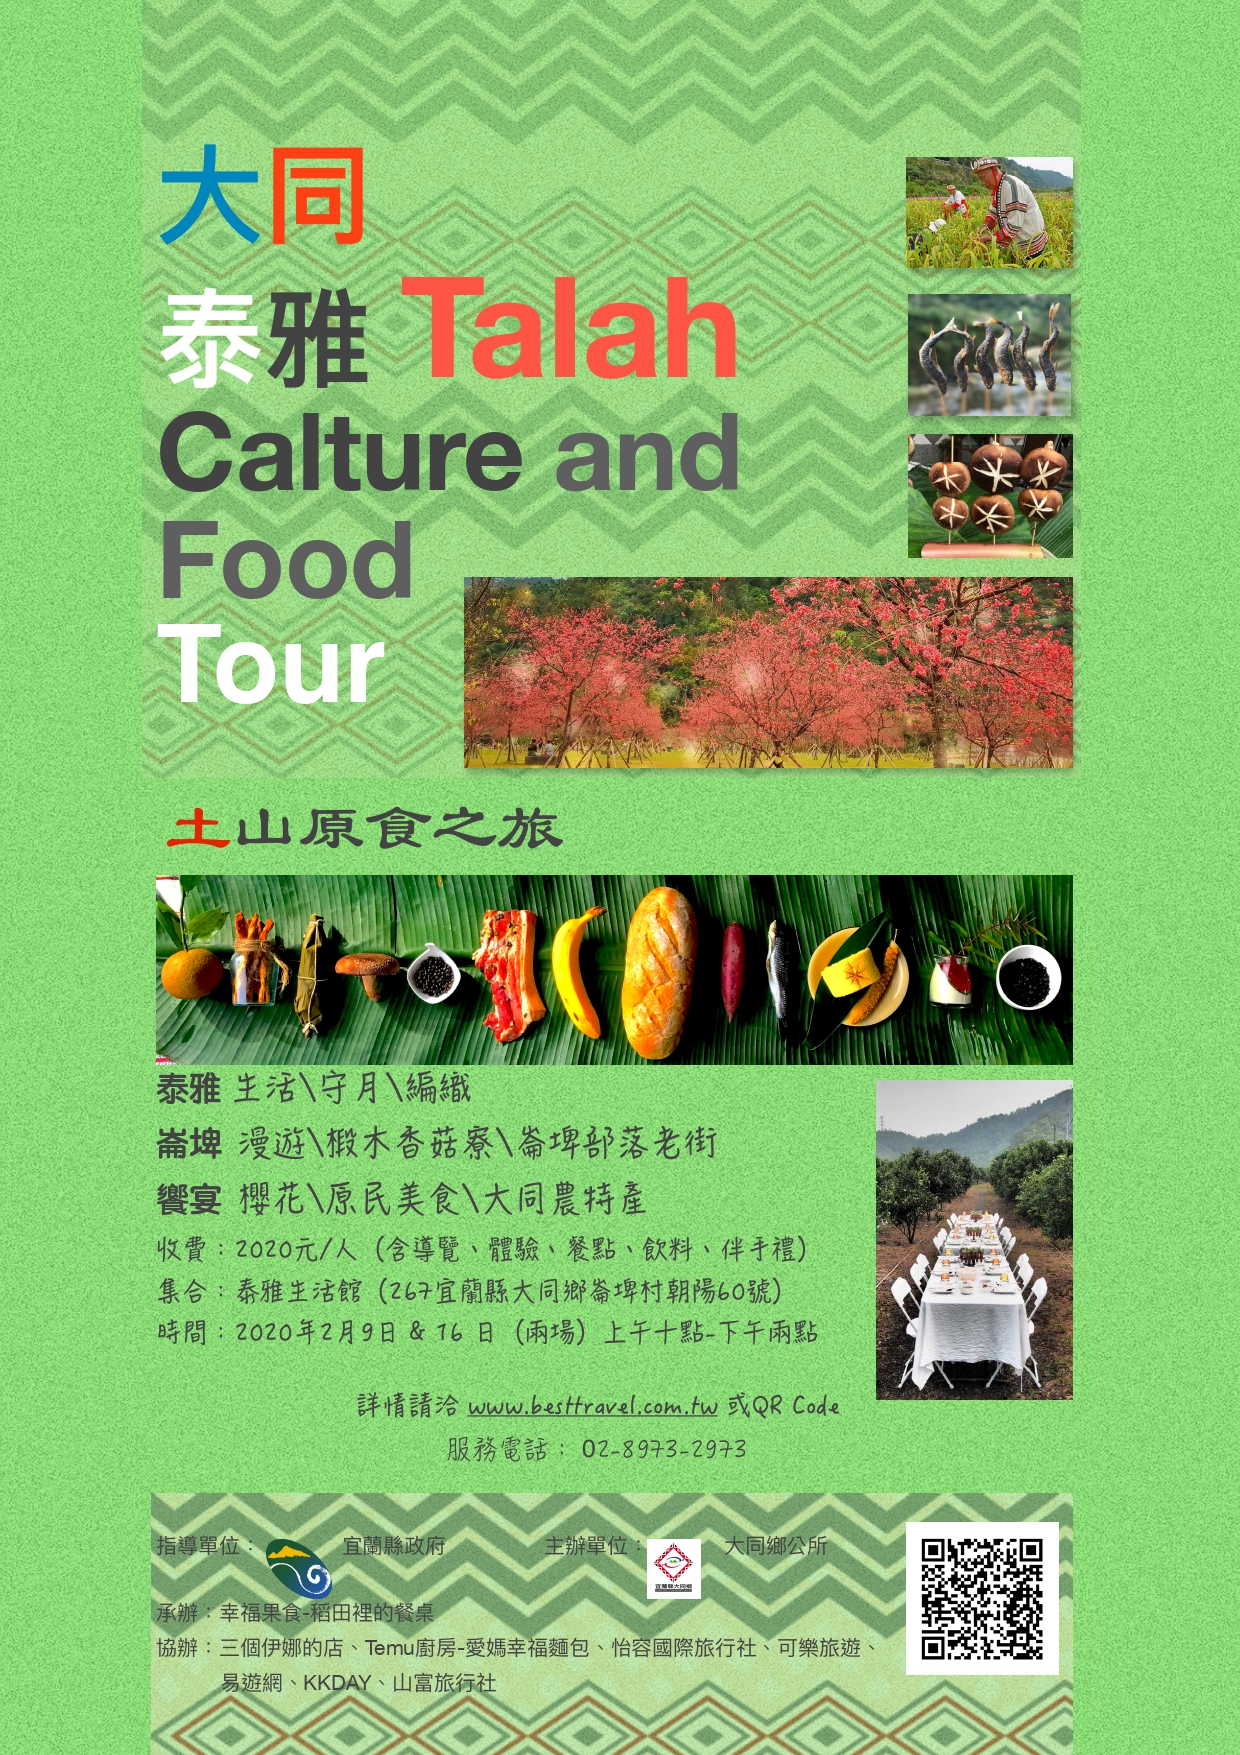 大同泰雅 Talah Culture and Food Tour - 土山原食之旅